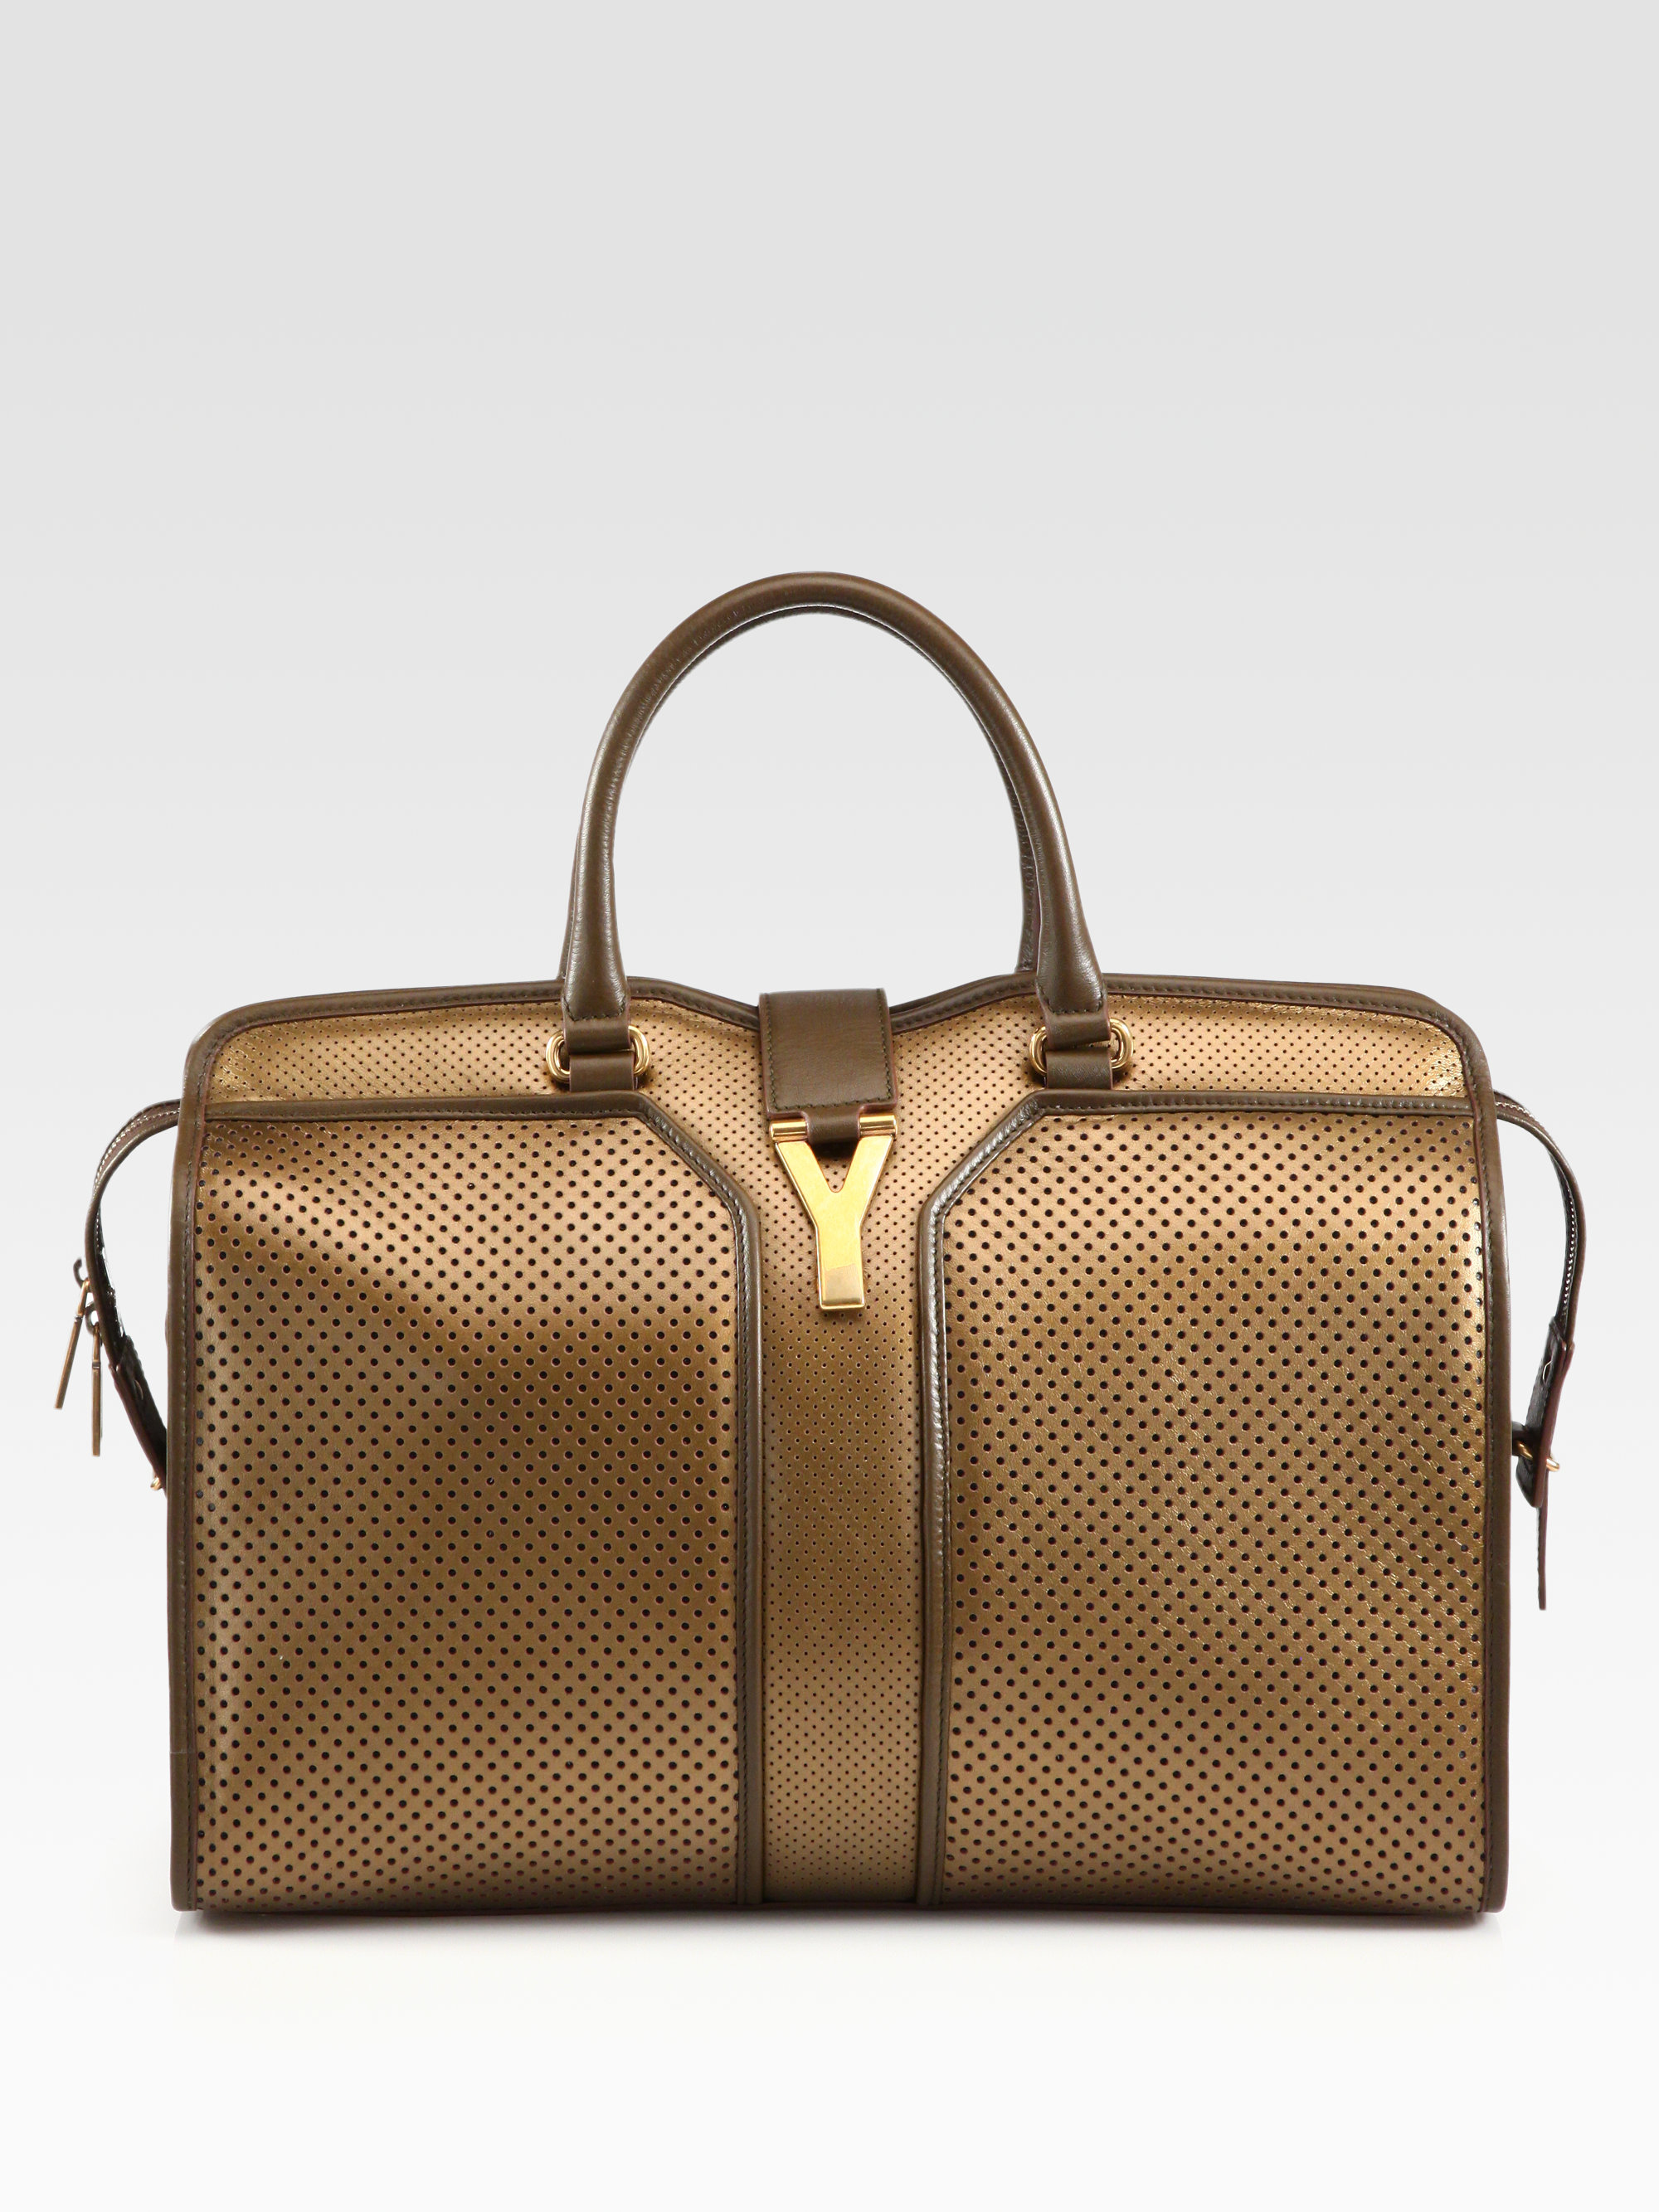 Saint laurent Ysl Cabas Chyc Perforated Large East West Bag in ...